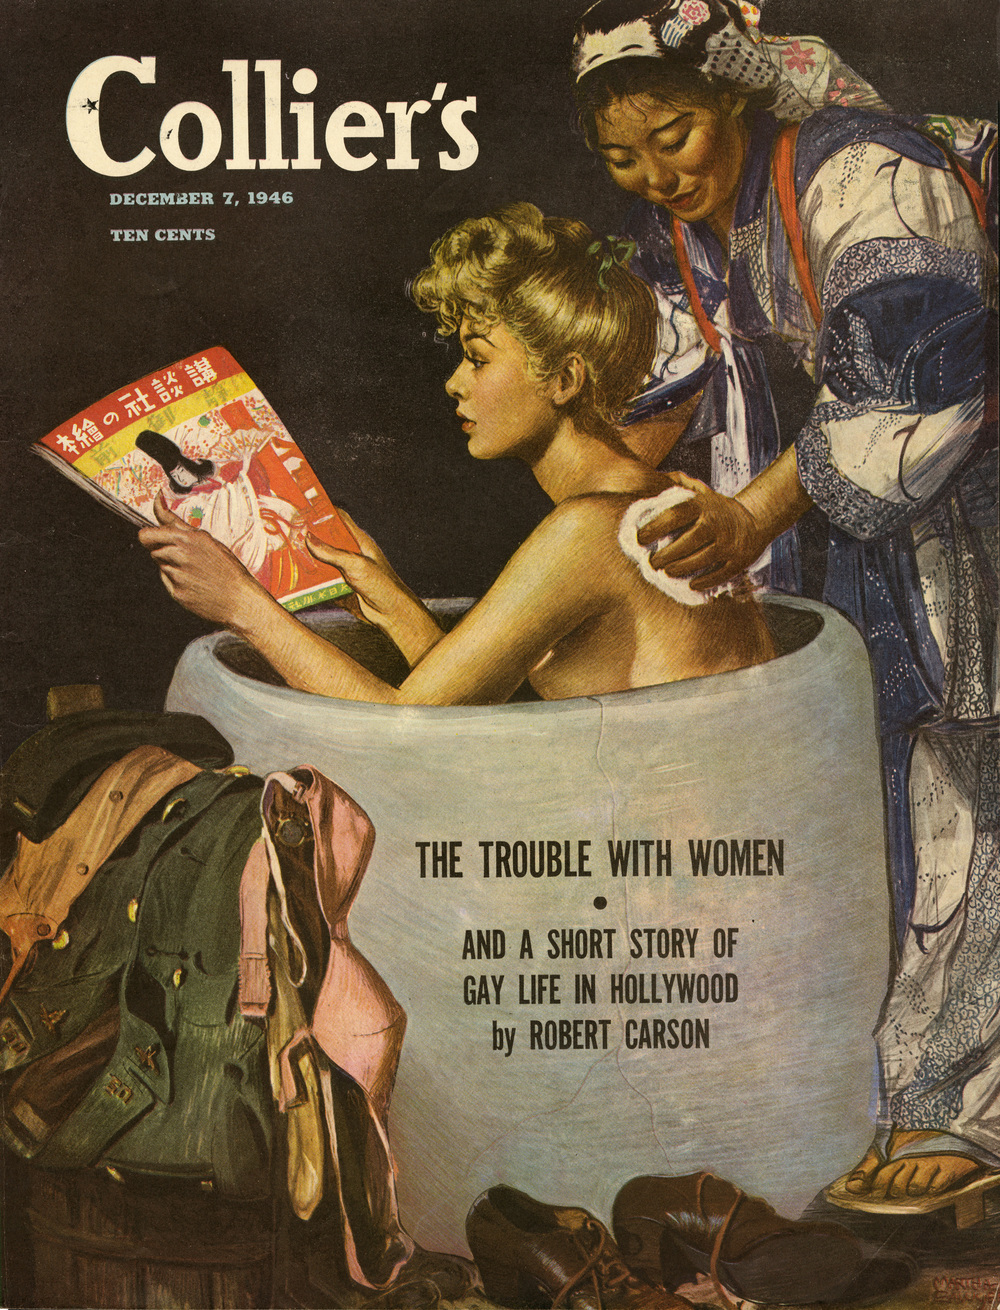 Martha Sawyers, Cover illustration for Colliers. December 7, 1946. This is a complicated image. The publication date of the magazine is five years to the day after the Japanese attack at Pearl Harbor. The U.S. has won the war, and costume clues in the left foreground tell us that the blonde bathing woman is an occupying American military officer. She regards a Japanese periodical (perhaps uncomprehendingly) while an Japanese woman–some sort of an attendant–scrubs her back. The illustration conveys matter-of-fact subjugation, a mixture of national and (implicitly) racial triumph.